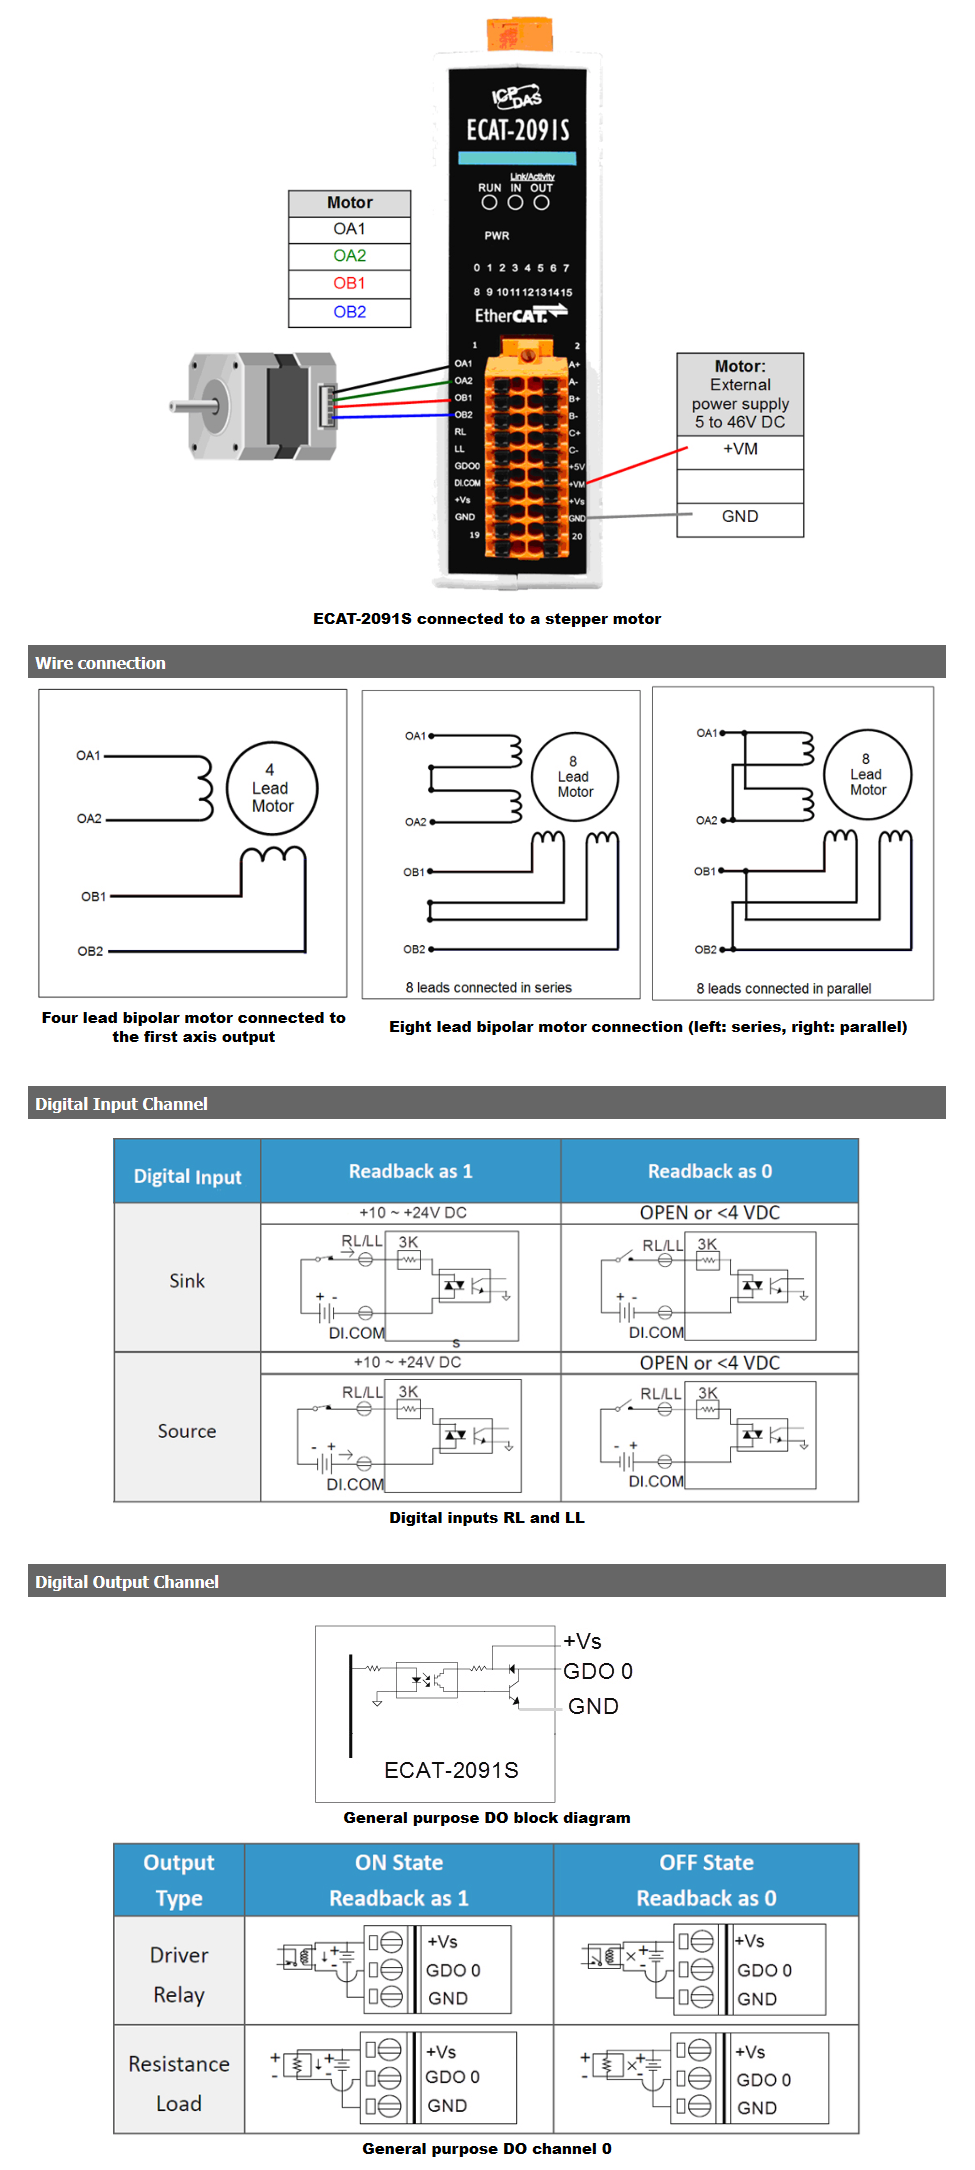 Ecat 2091s Ethercat Single Axis Stepper Motor Controller Driver Schematic Wiring Diagrams Compared To Quotladderquot Pin Assignment Wire Connection